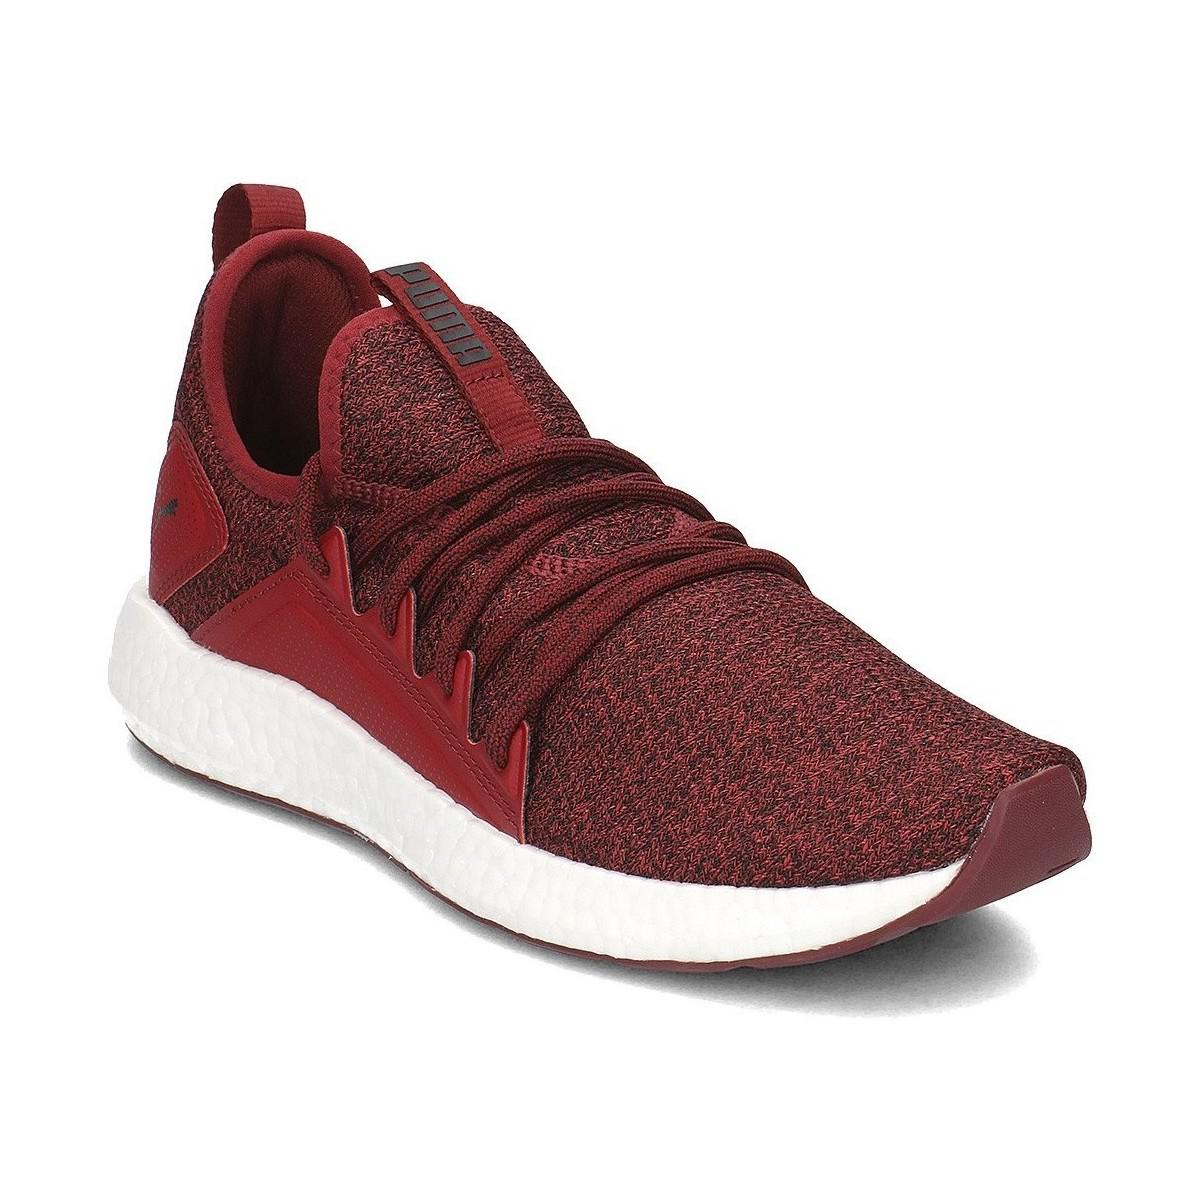 Puma Nrgy Neko Knit Men s Shoes (trainers) In Multicolour in Red for ... 02c2b7299